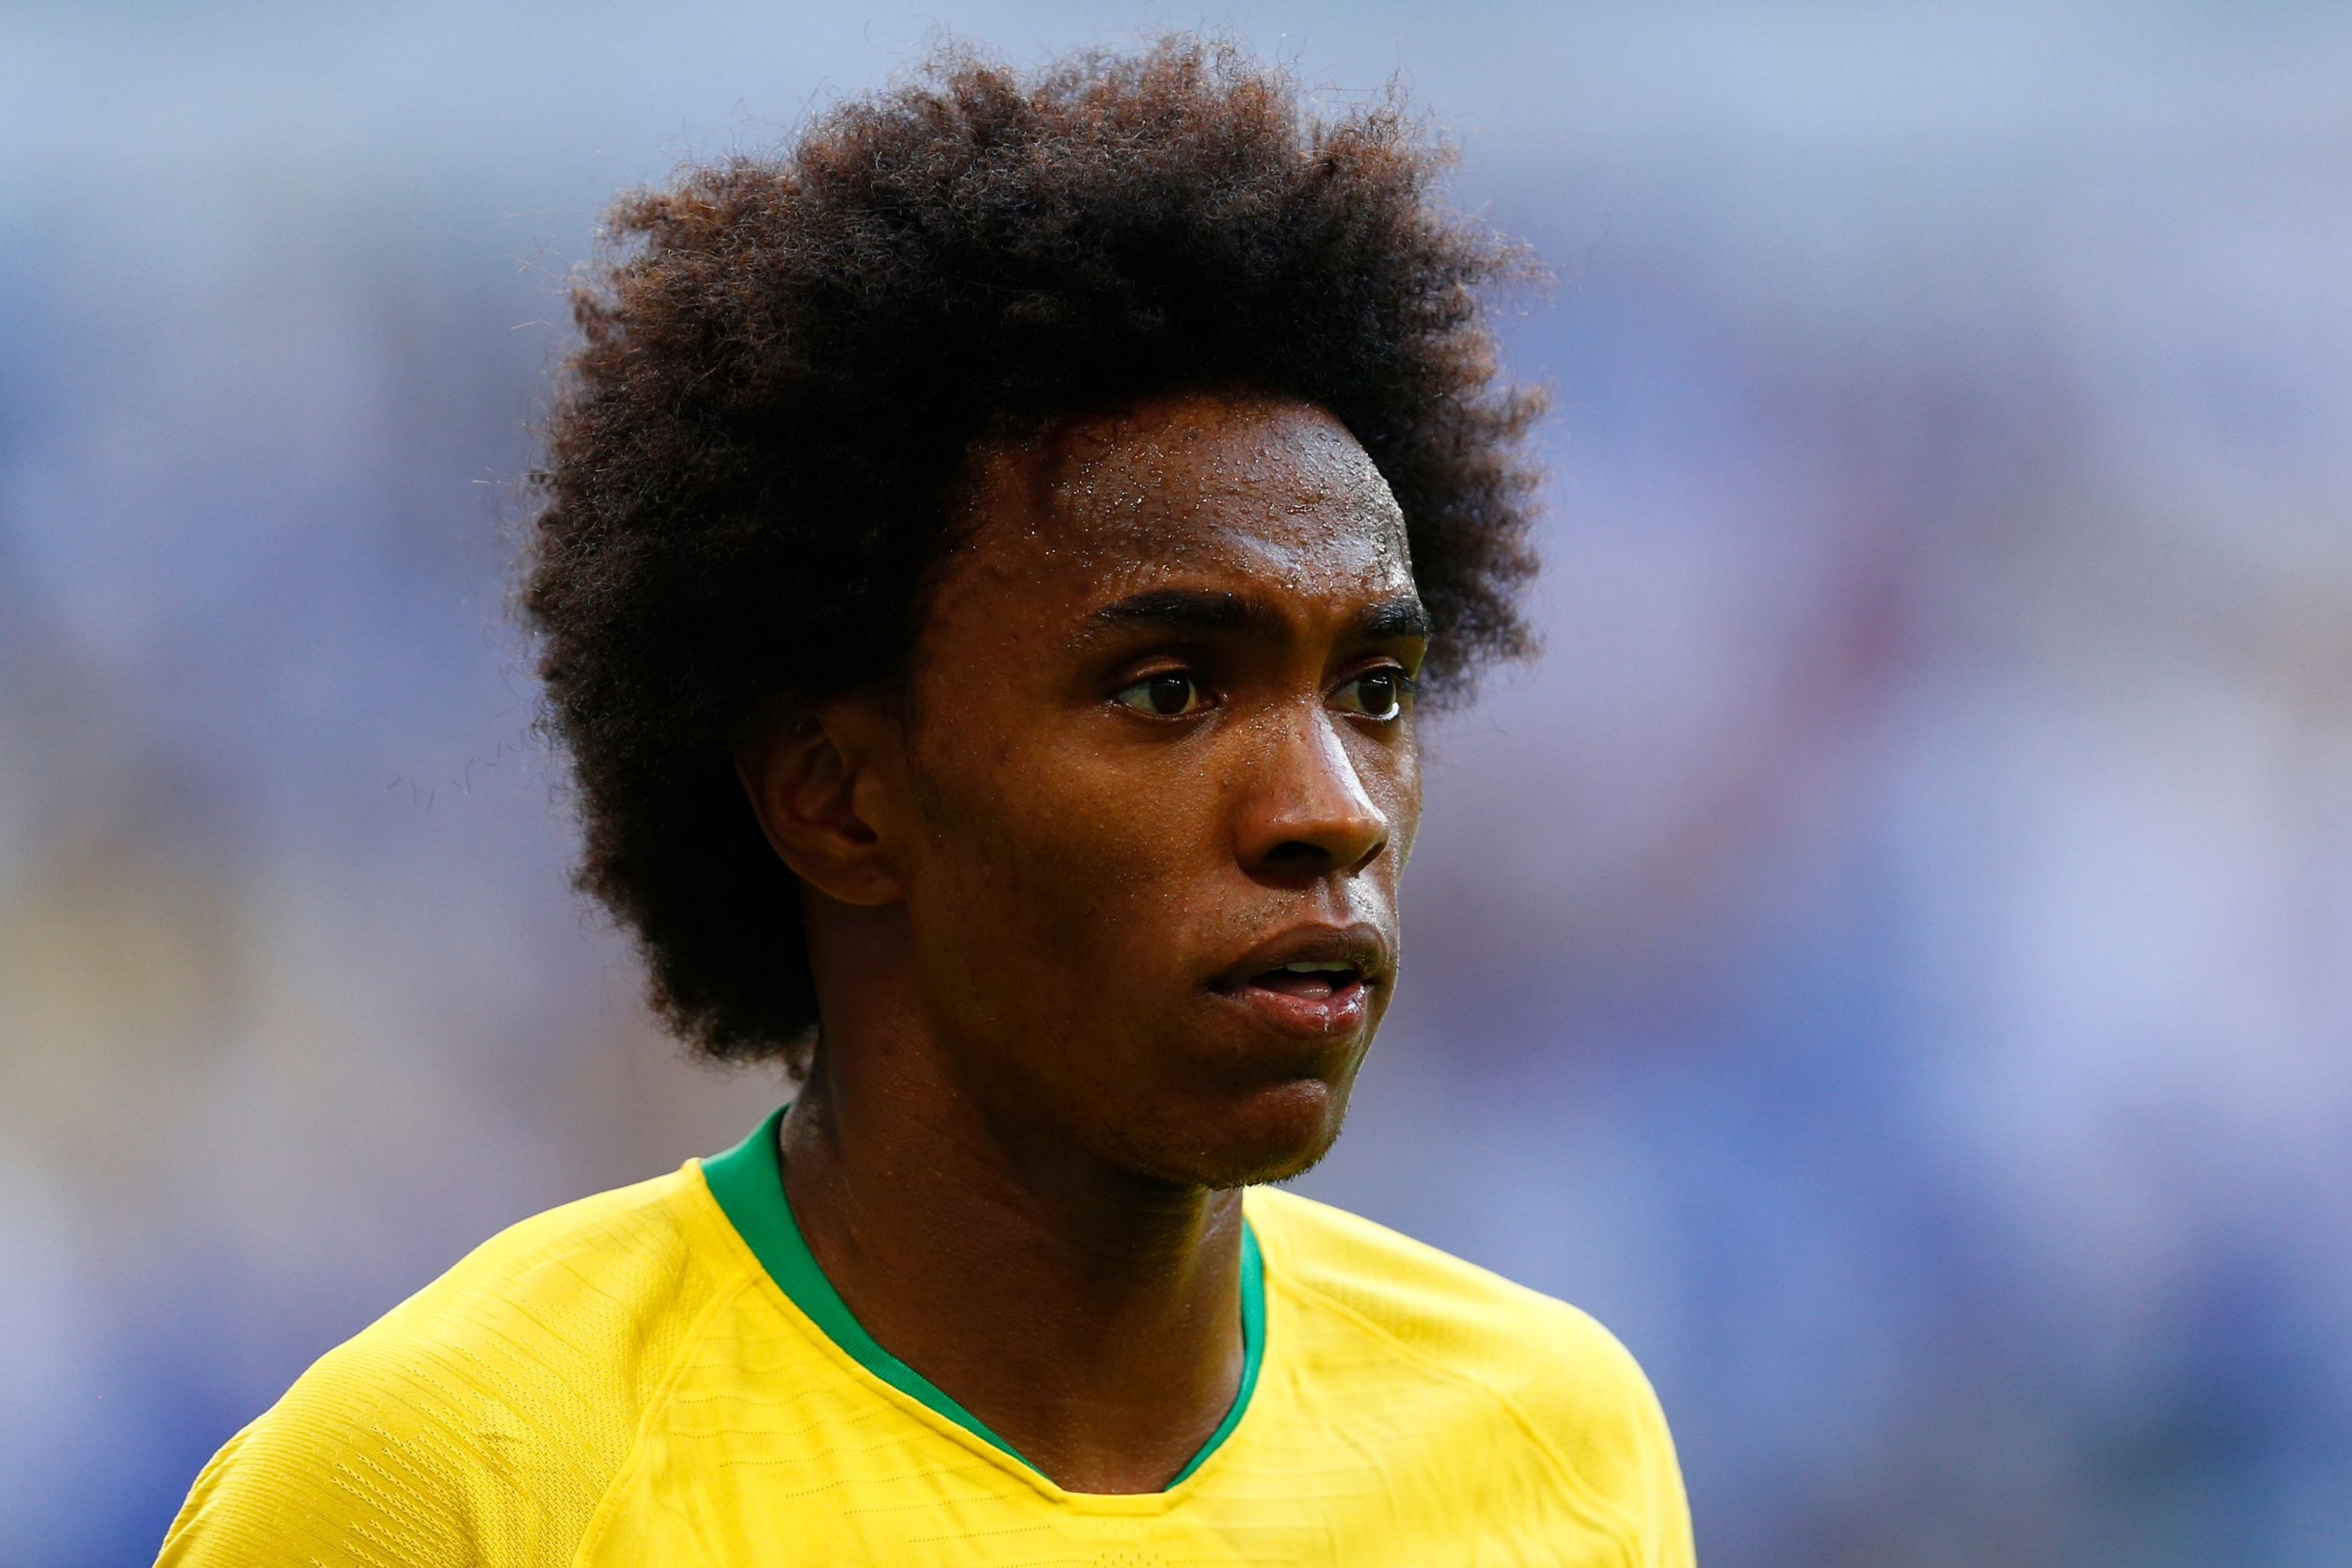 Brazil's forward Willian reacts during the Russia 2018 World Cup round of 16 football match between Brazil and Mexico at the Samara Arena in Samara on July 2, 2018. / AFP PHOTO / BENJAMIN CREMEL / RESTRICTED TO EDITORIAL USE - NO MOBILE PUSH ALERTS/DOWNLOADSBENJAMIN CREMEL/AFP/Getty Images